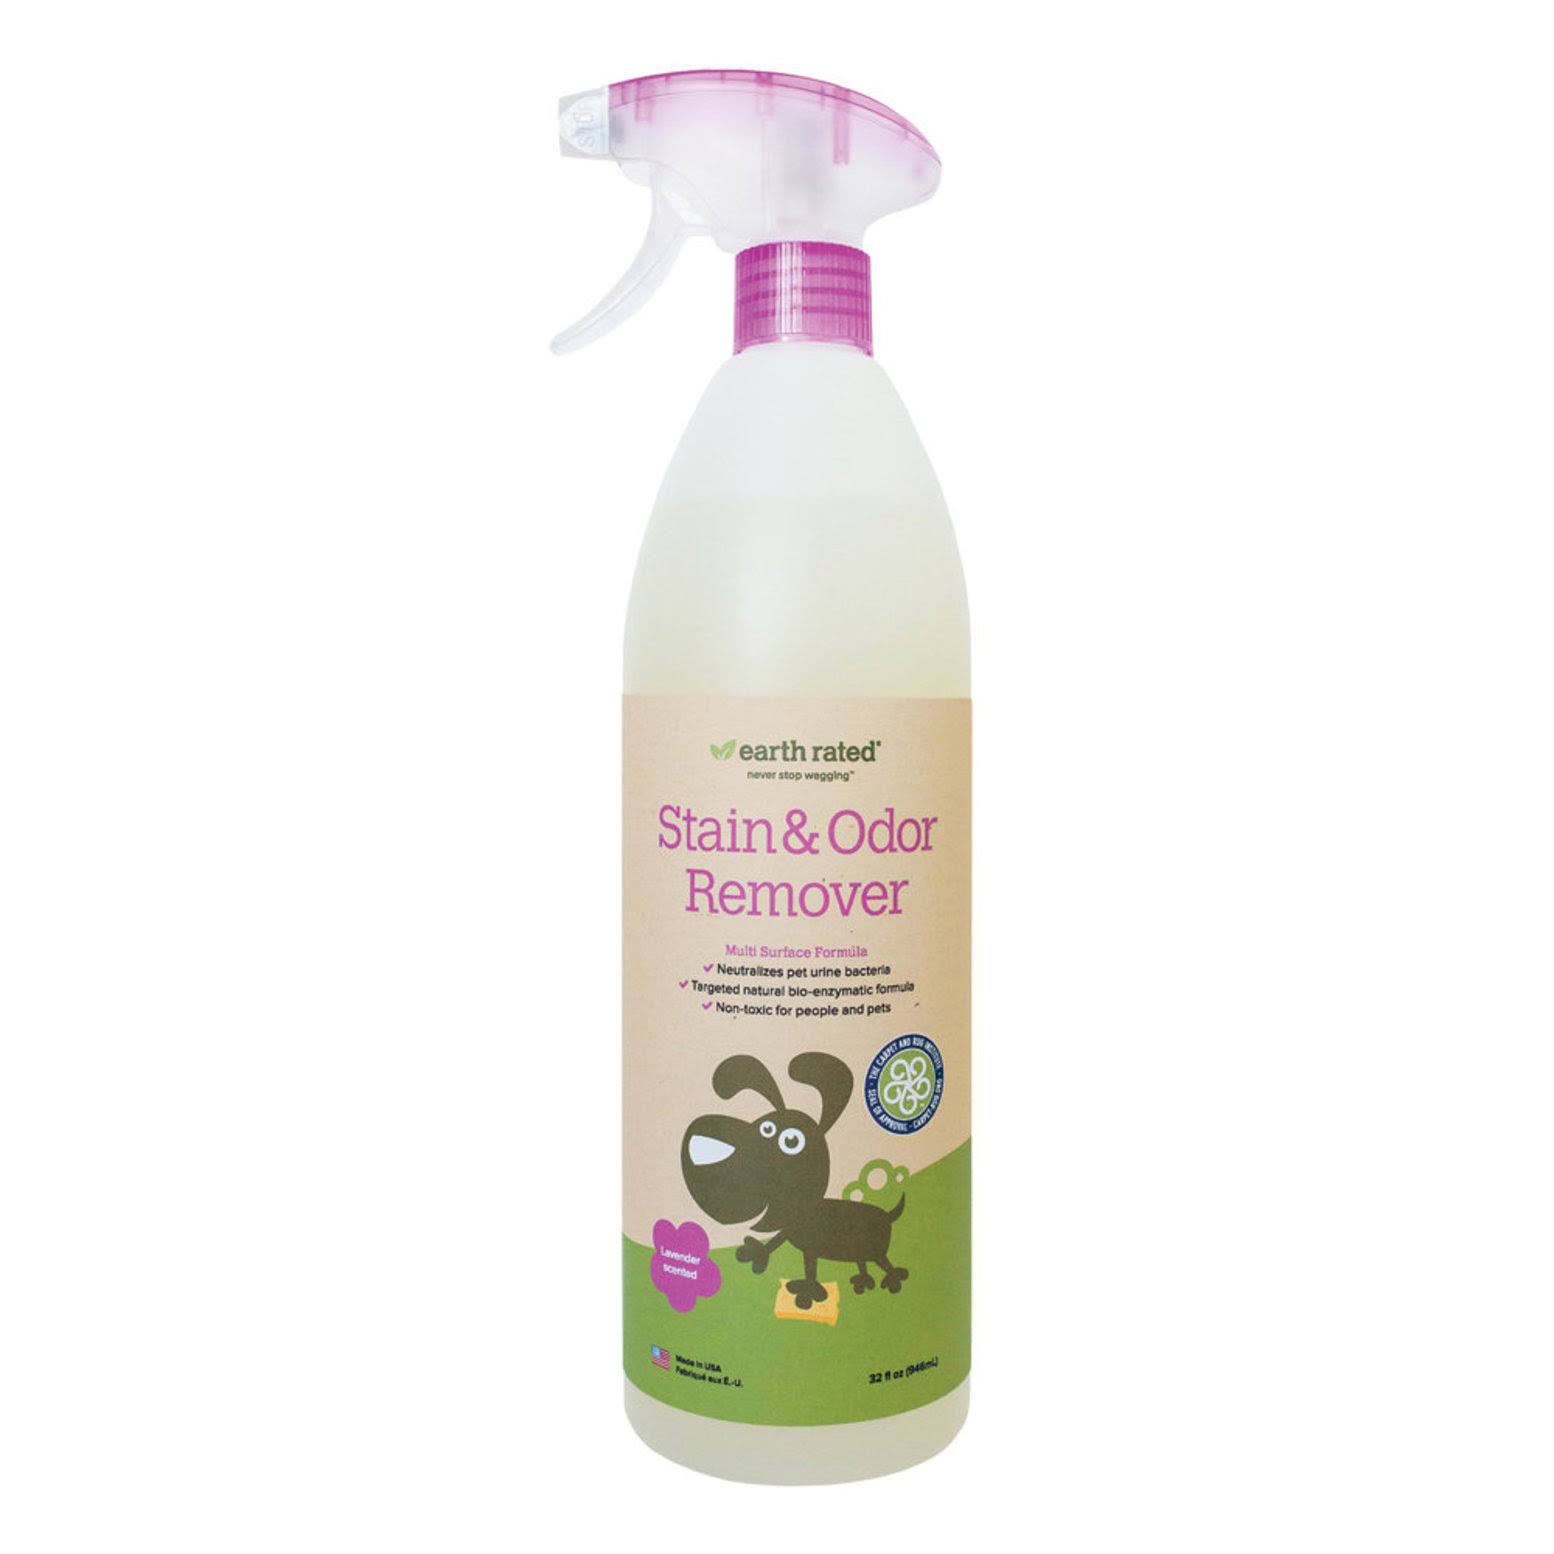 Earth Rated Pet Stain & Odor Remover - Lavender-Scented, 32oz